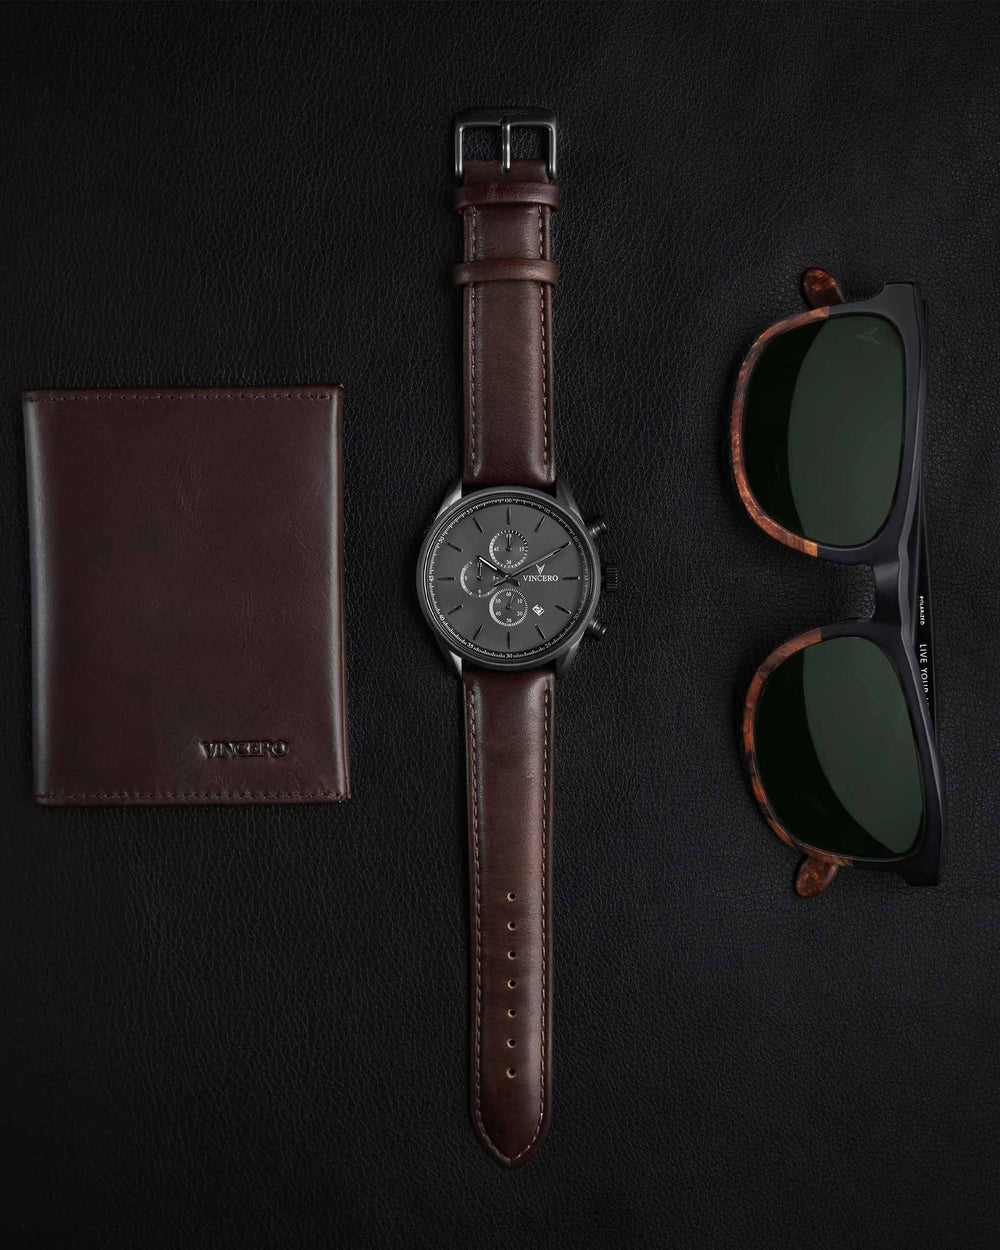 Chrono S Walnut Italian Leather Strap Gunmetal Watch Face Gunmetal Case Clasp Silver Accents